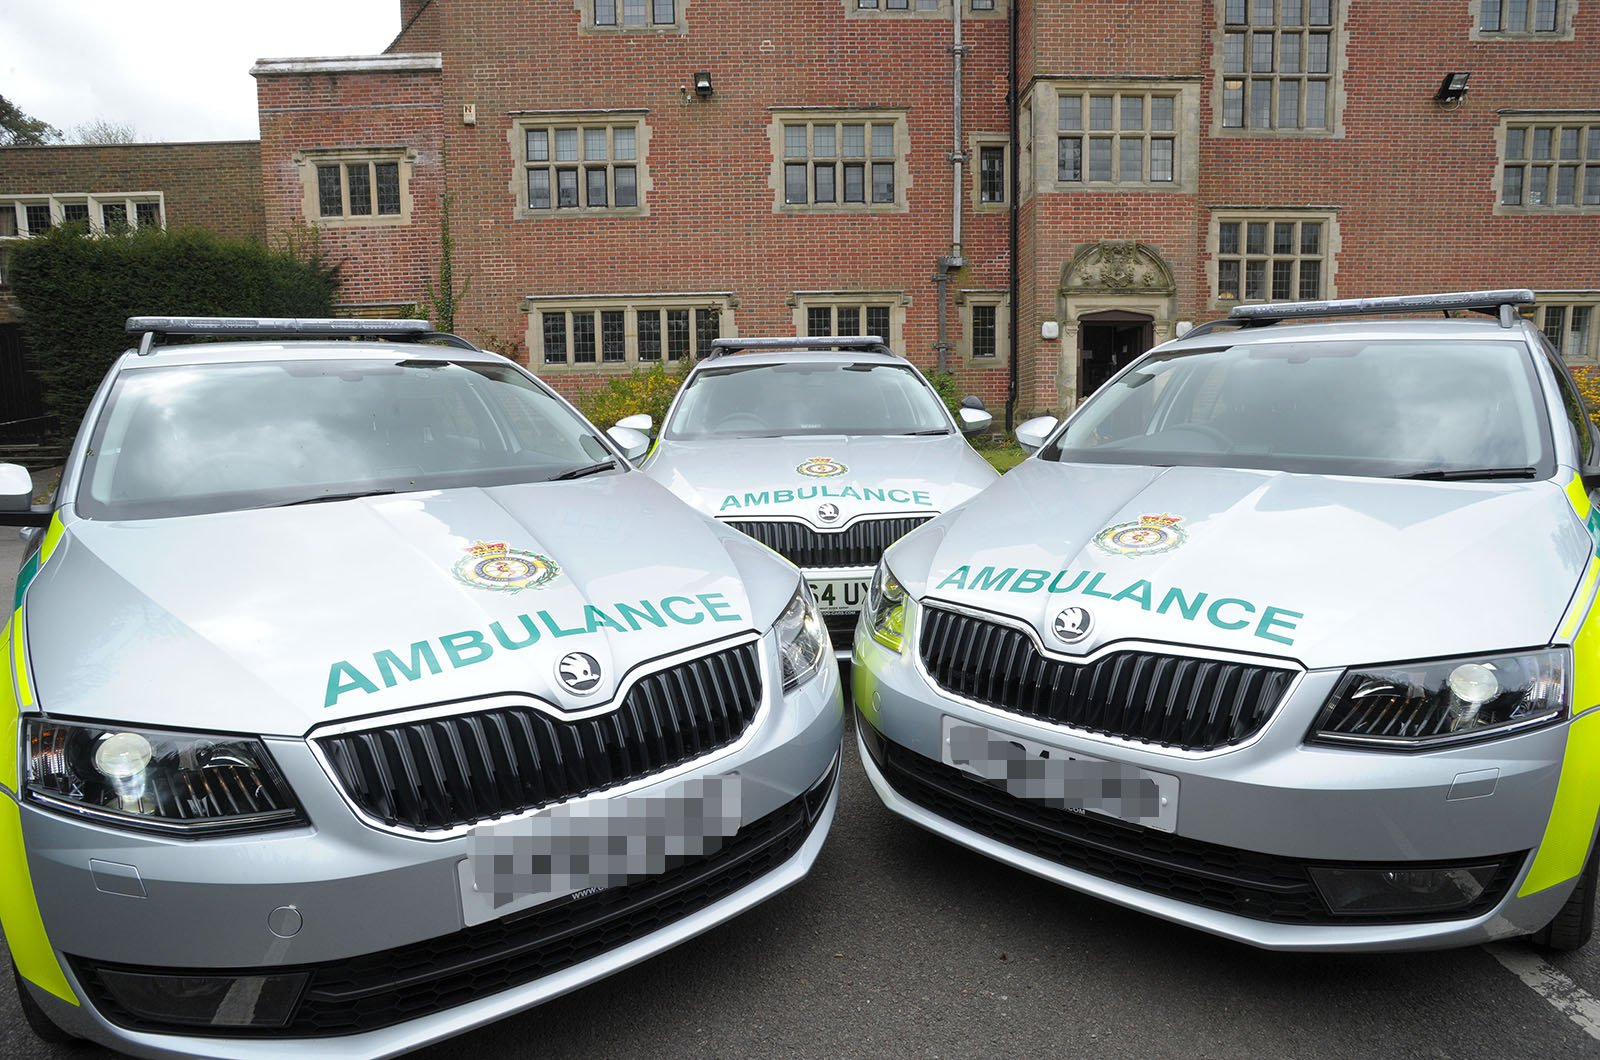 Skoda Octavia Estate ambulances